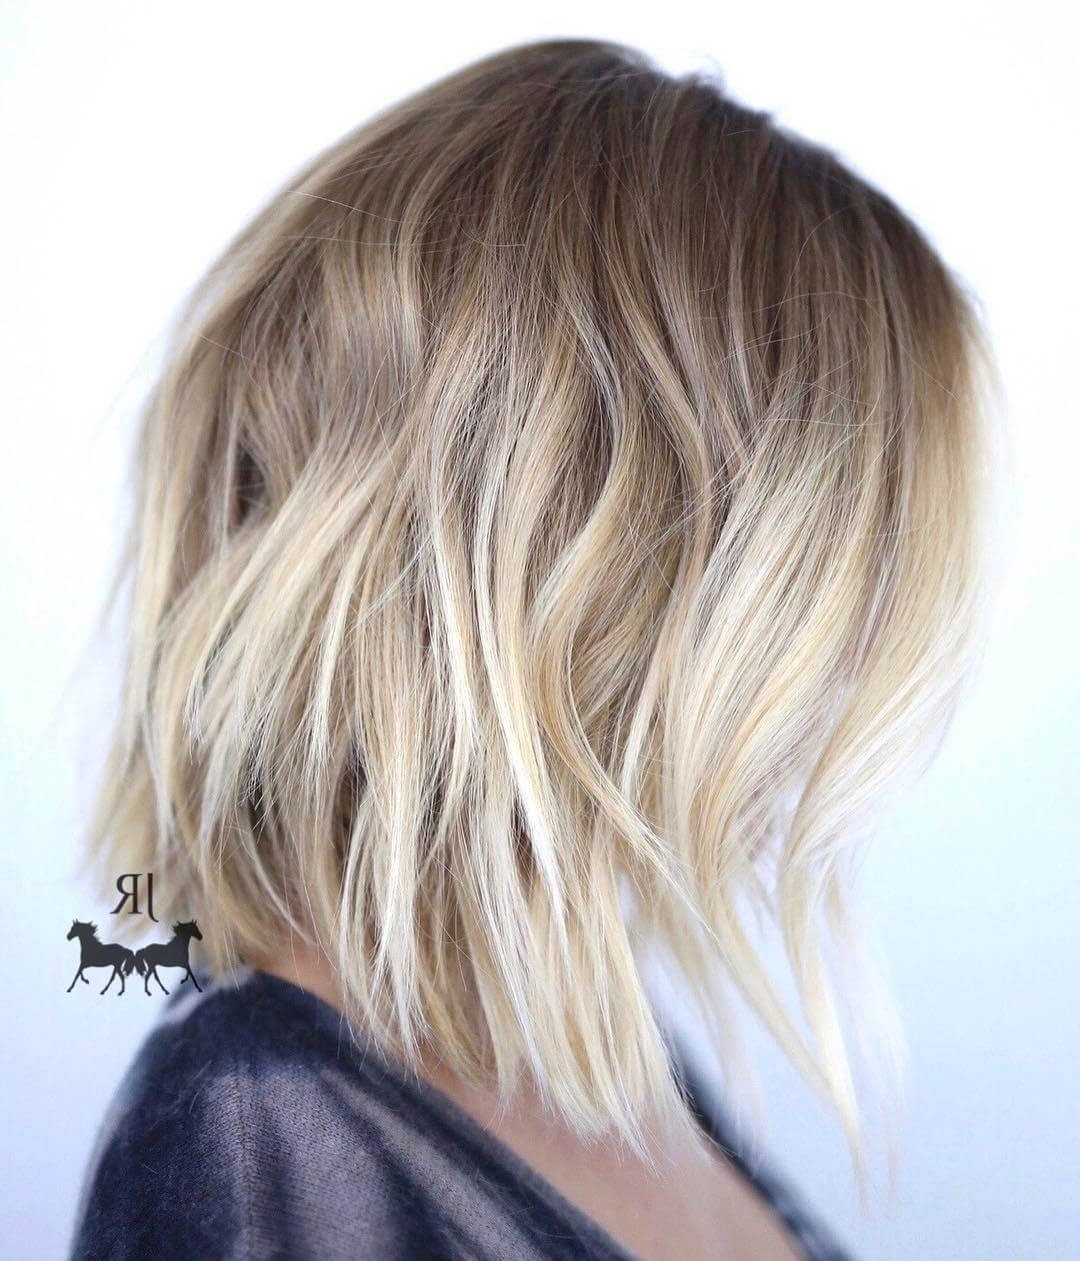 50 Fresh Short Blonde Hair Ideas To Update Your Style In 2018 Regarding Famous Ashy Blonde Pixie Hairstyles With A Messy Touch (View 7 of 20)